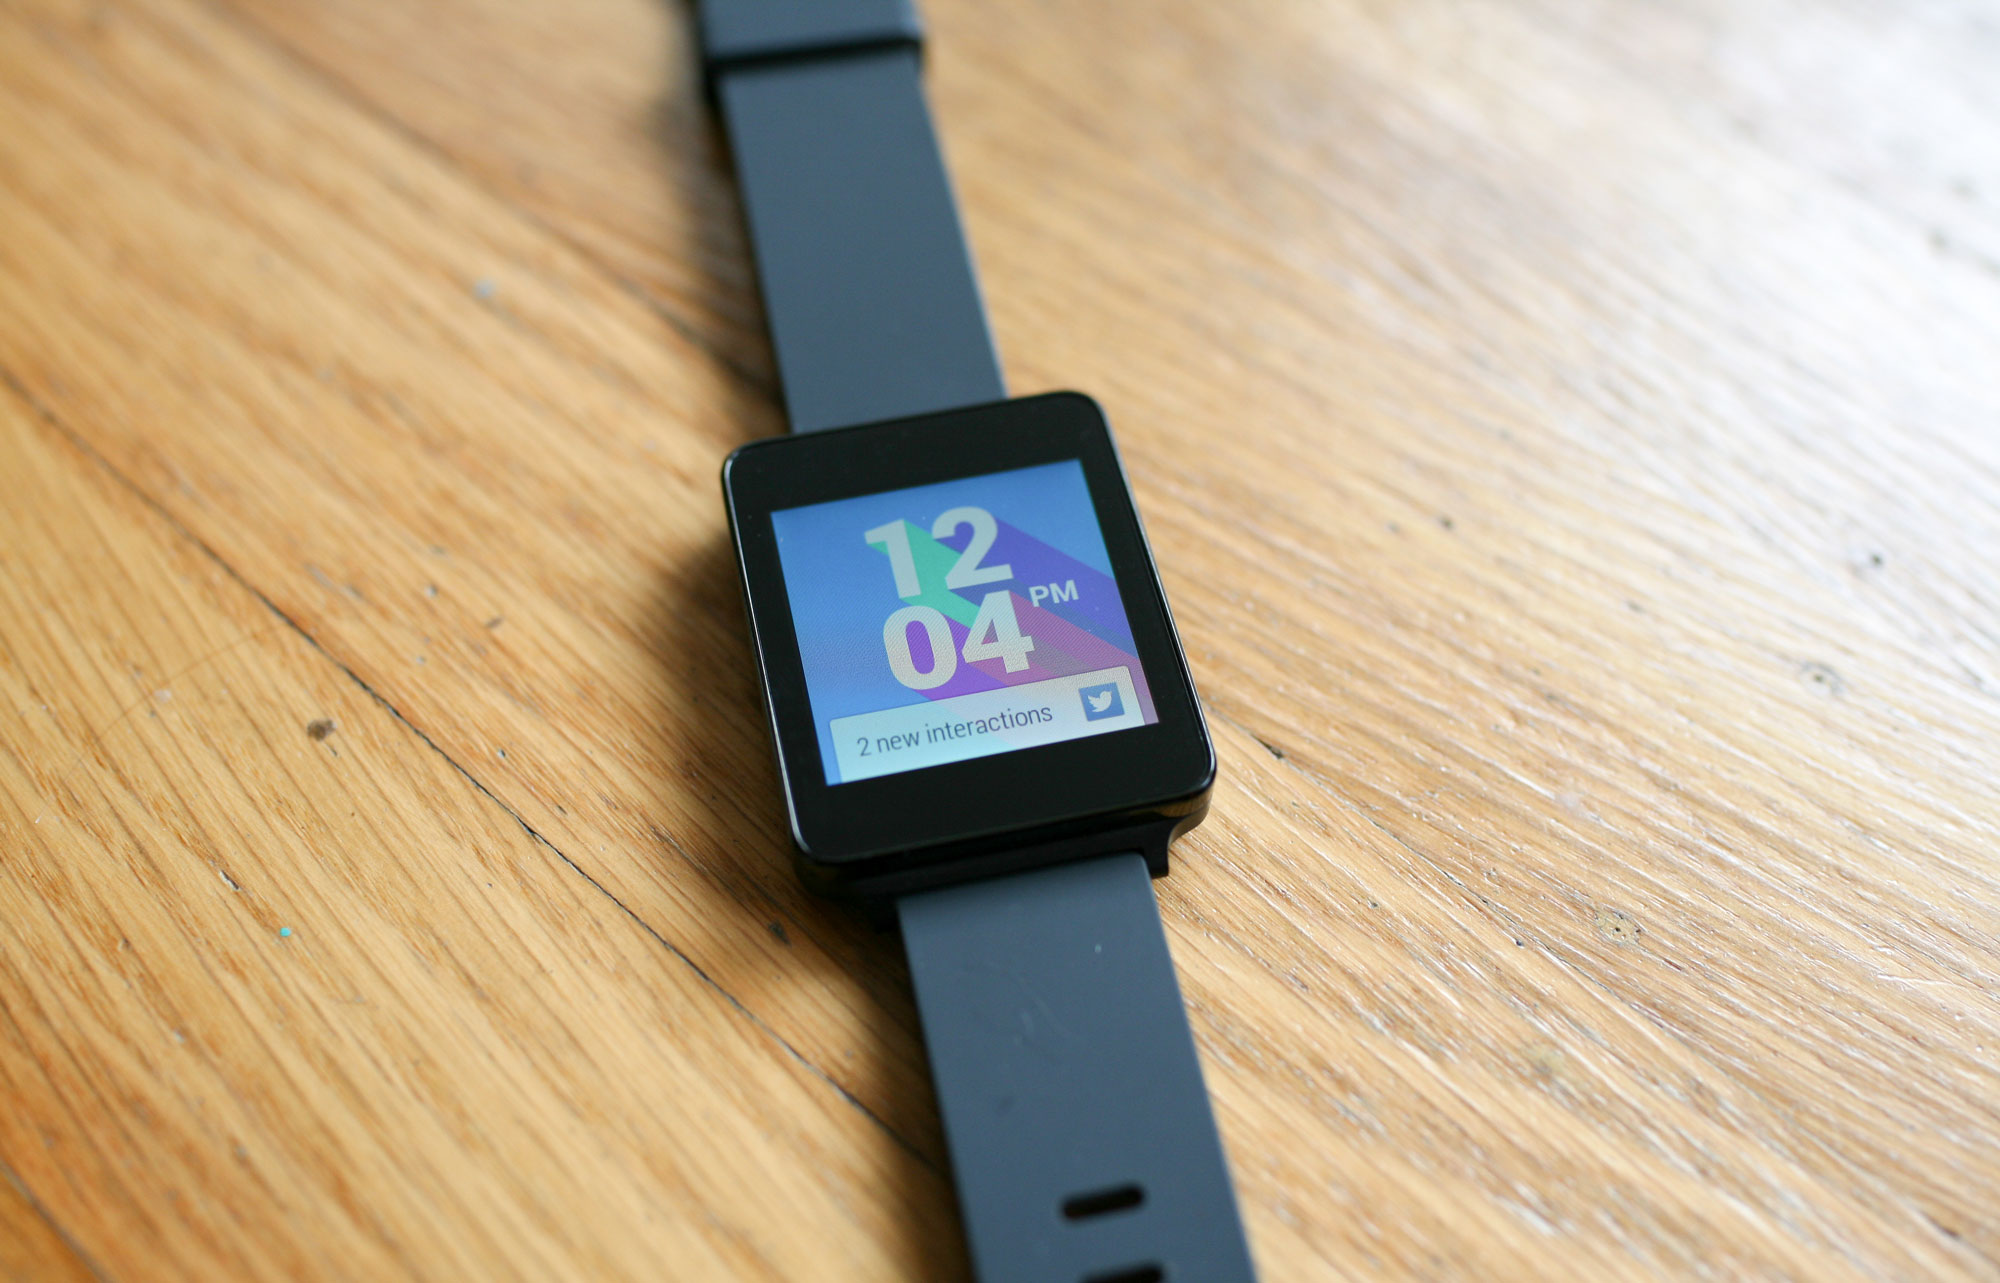 LG G Watch Review: The Wearable You Leave at Home